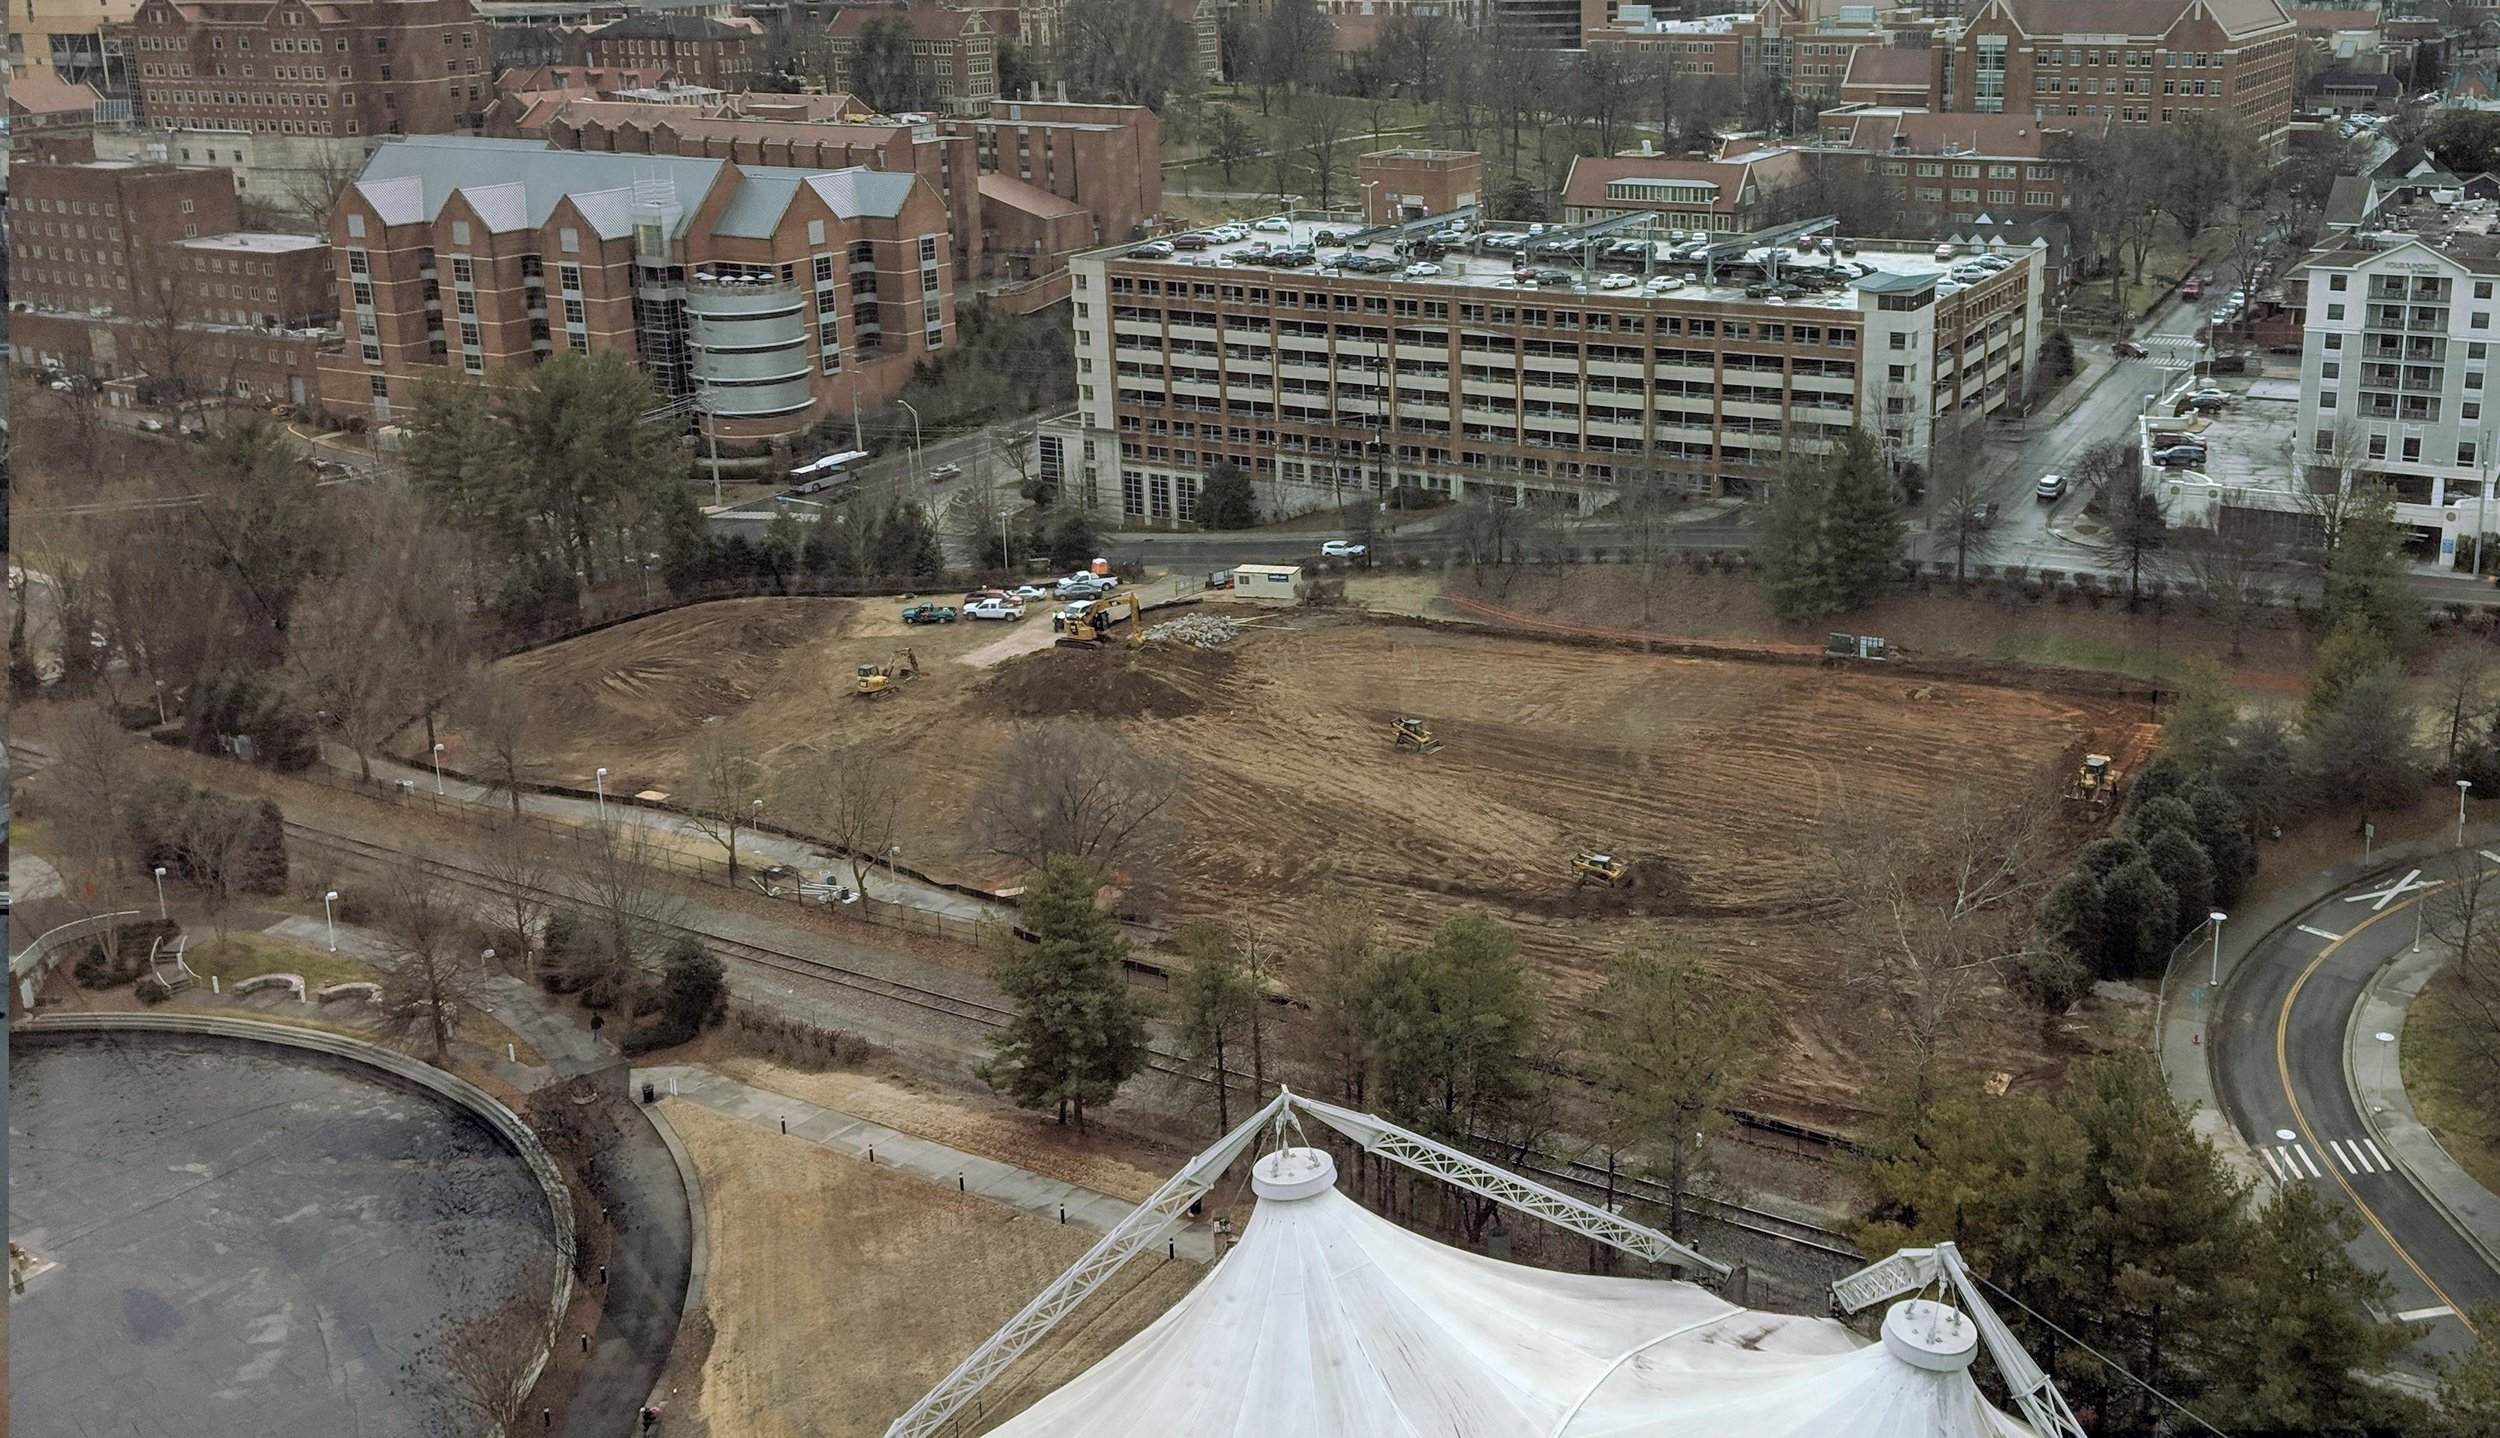 February 4, 2019 -- Site Demo and Rough Grading Underway